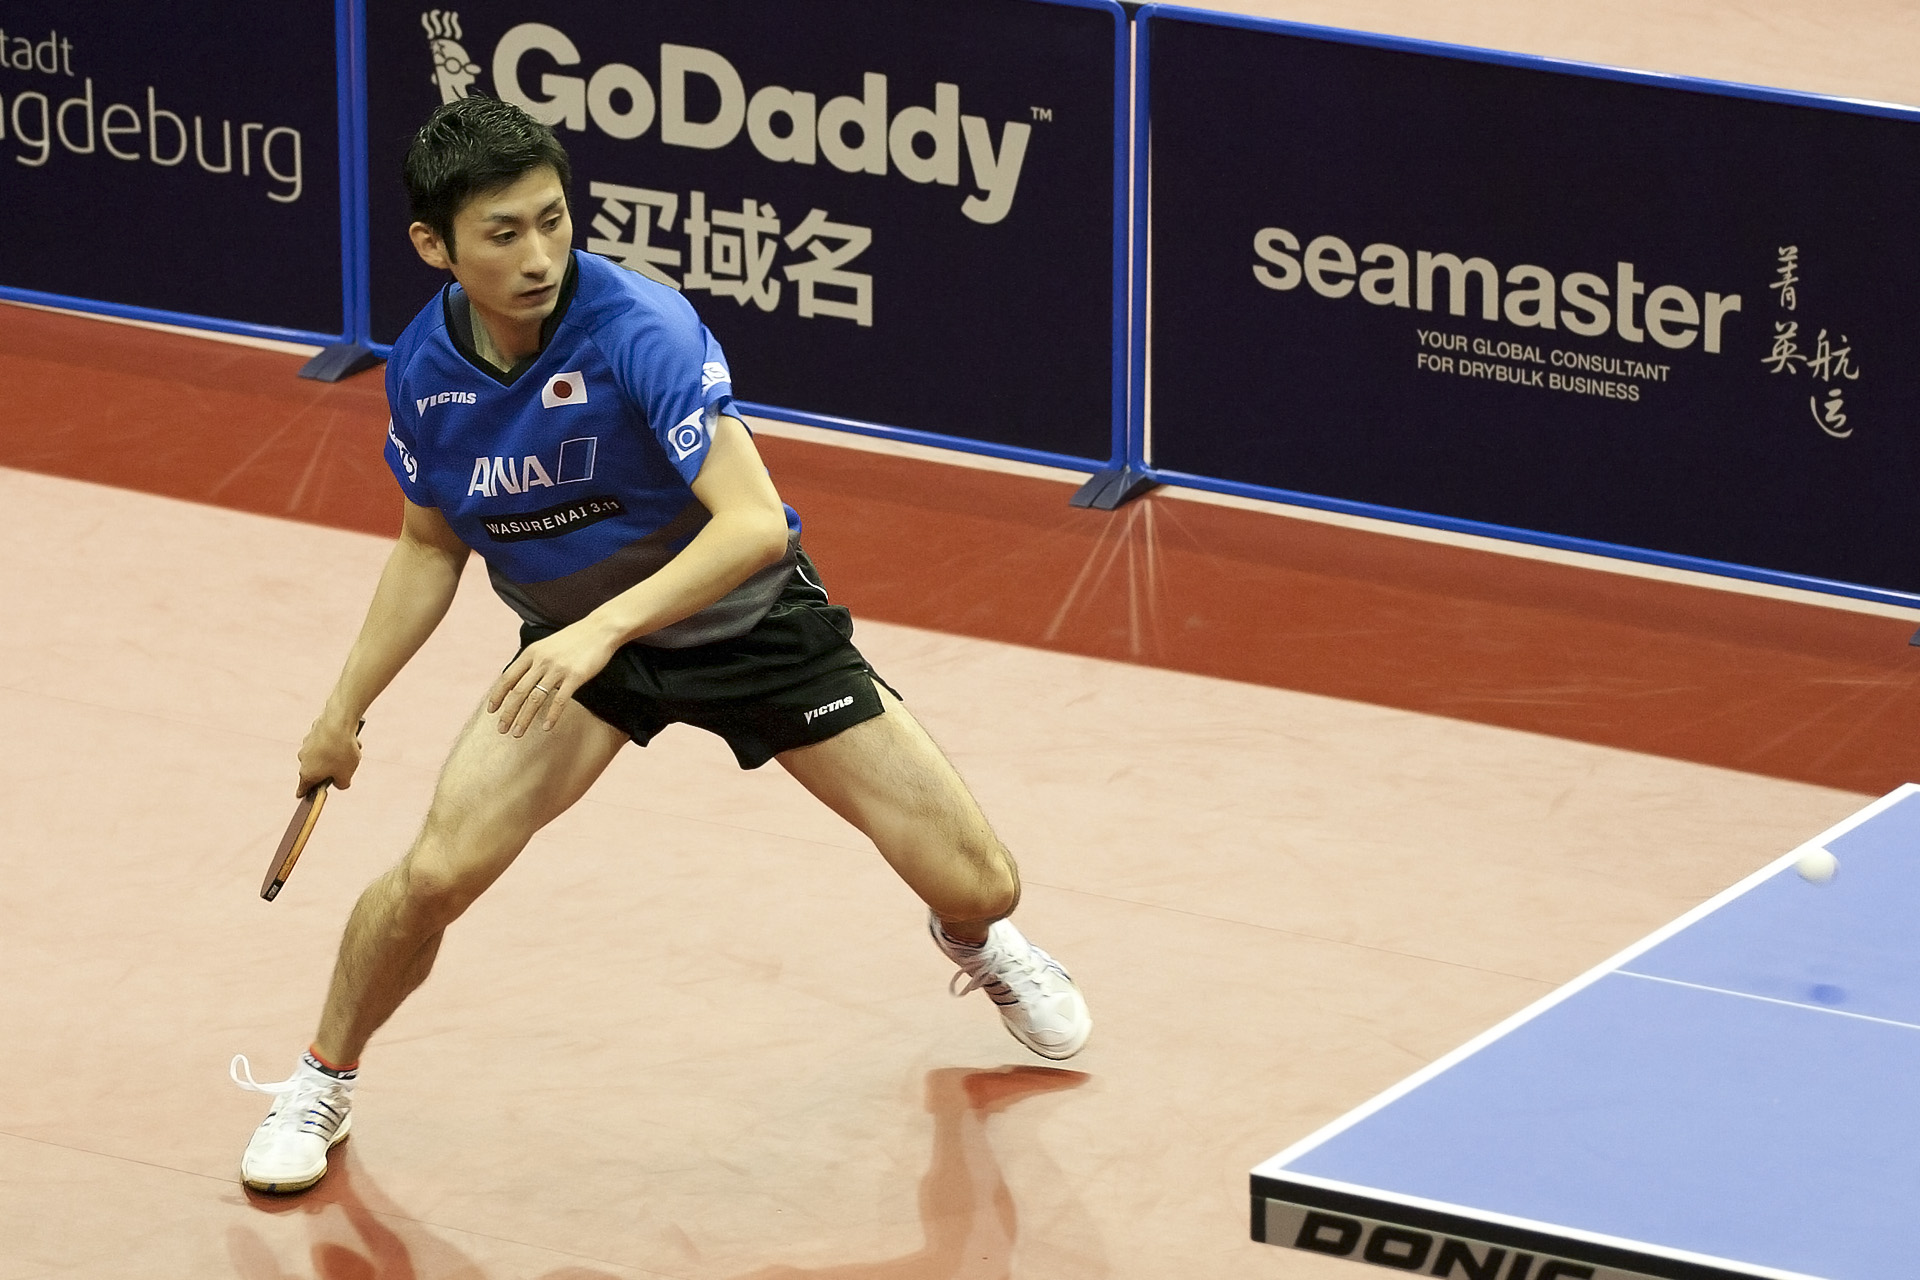 ITTF_World_Tour_2017_German_Open_Ueda_Jin_03